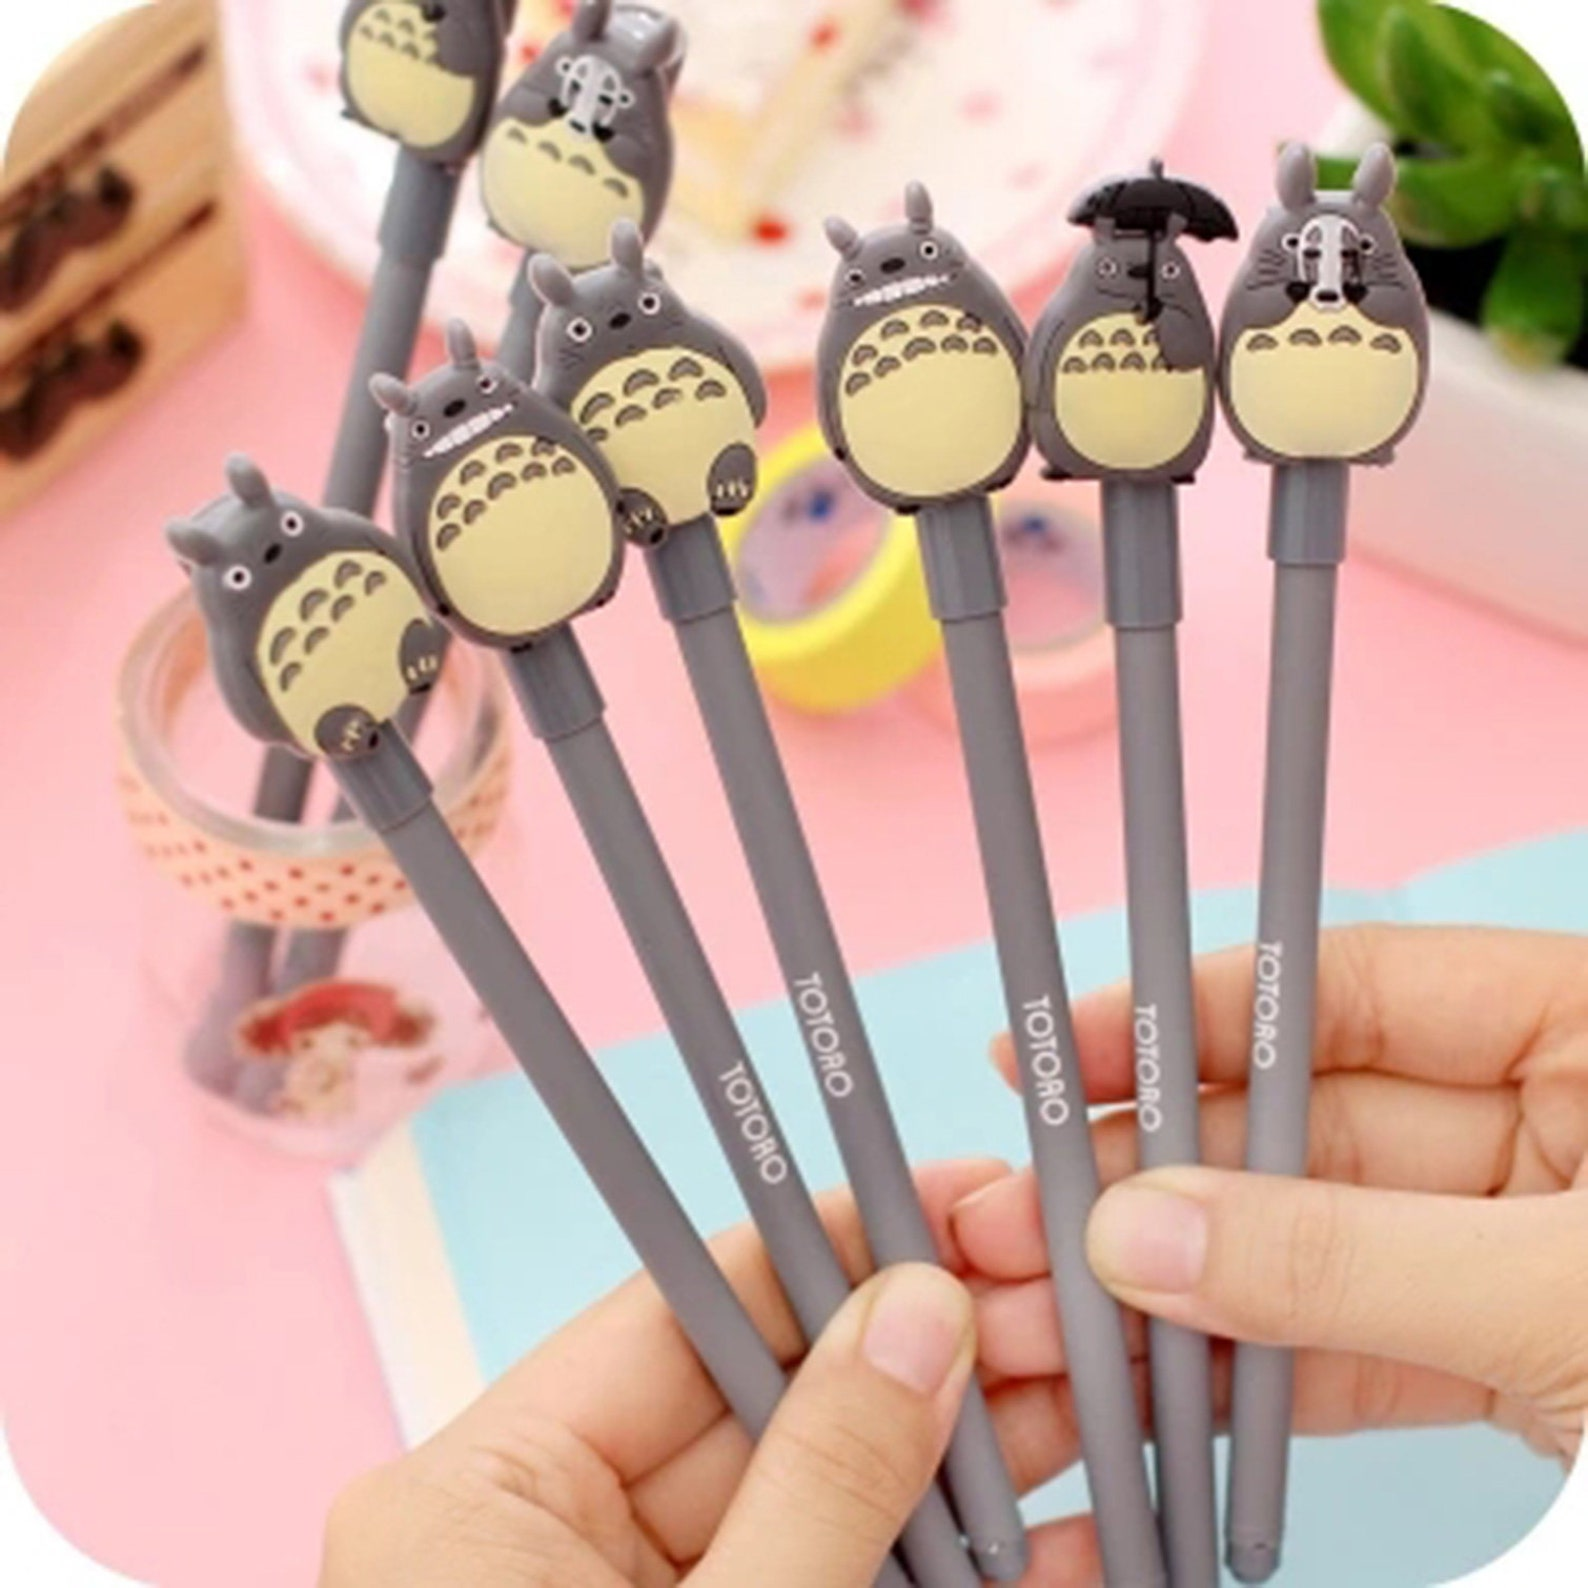 Cartoon Gel Pens Cute Pen, Black totoro Pen Set,